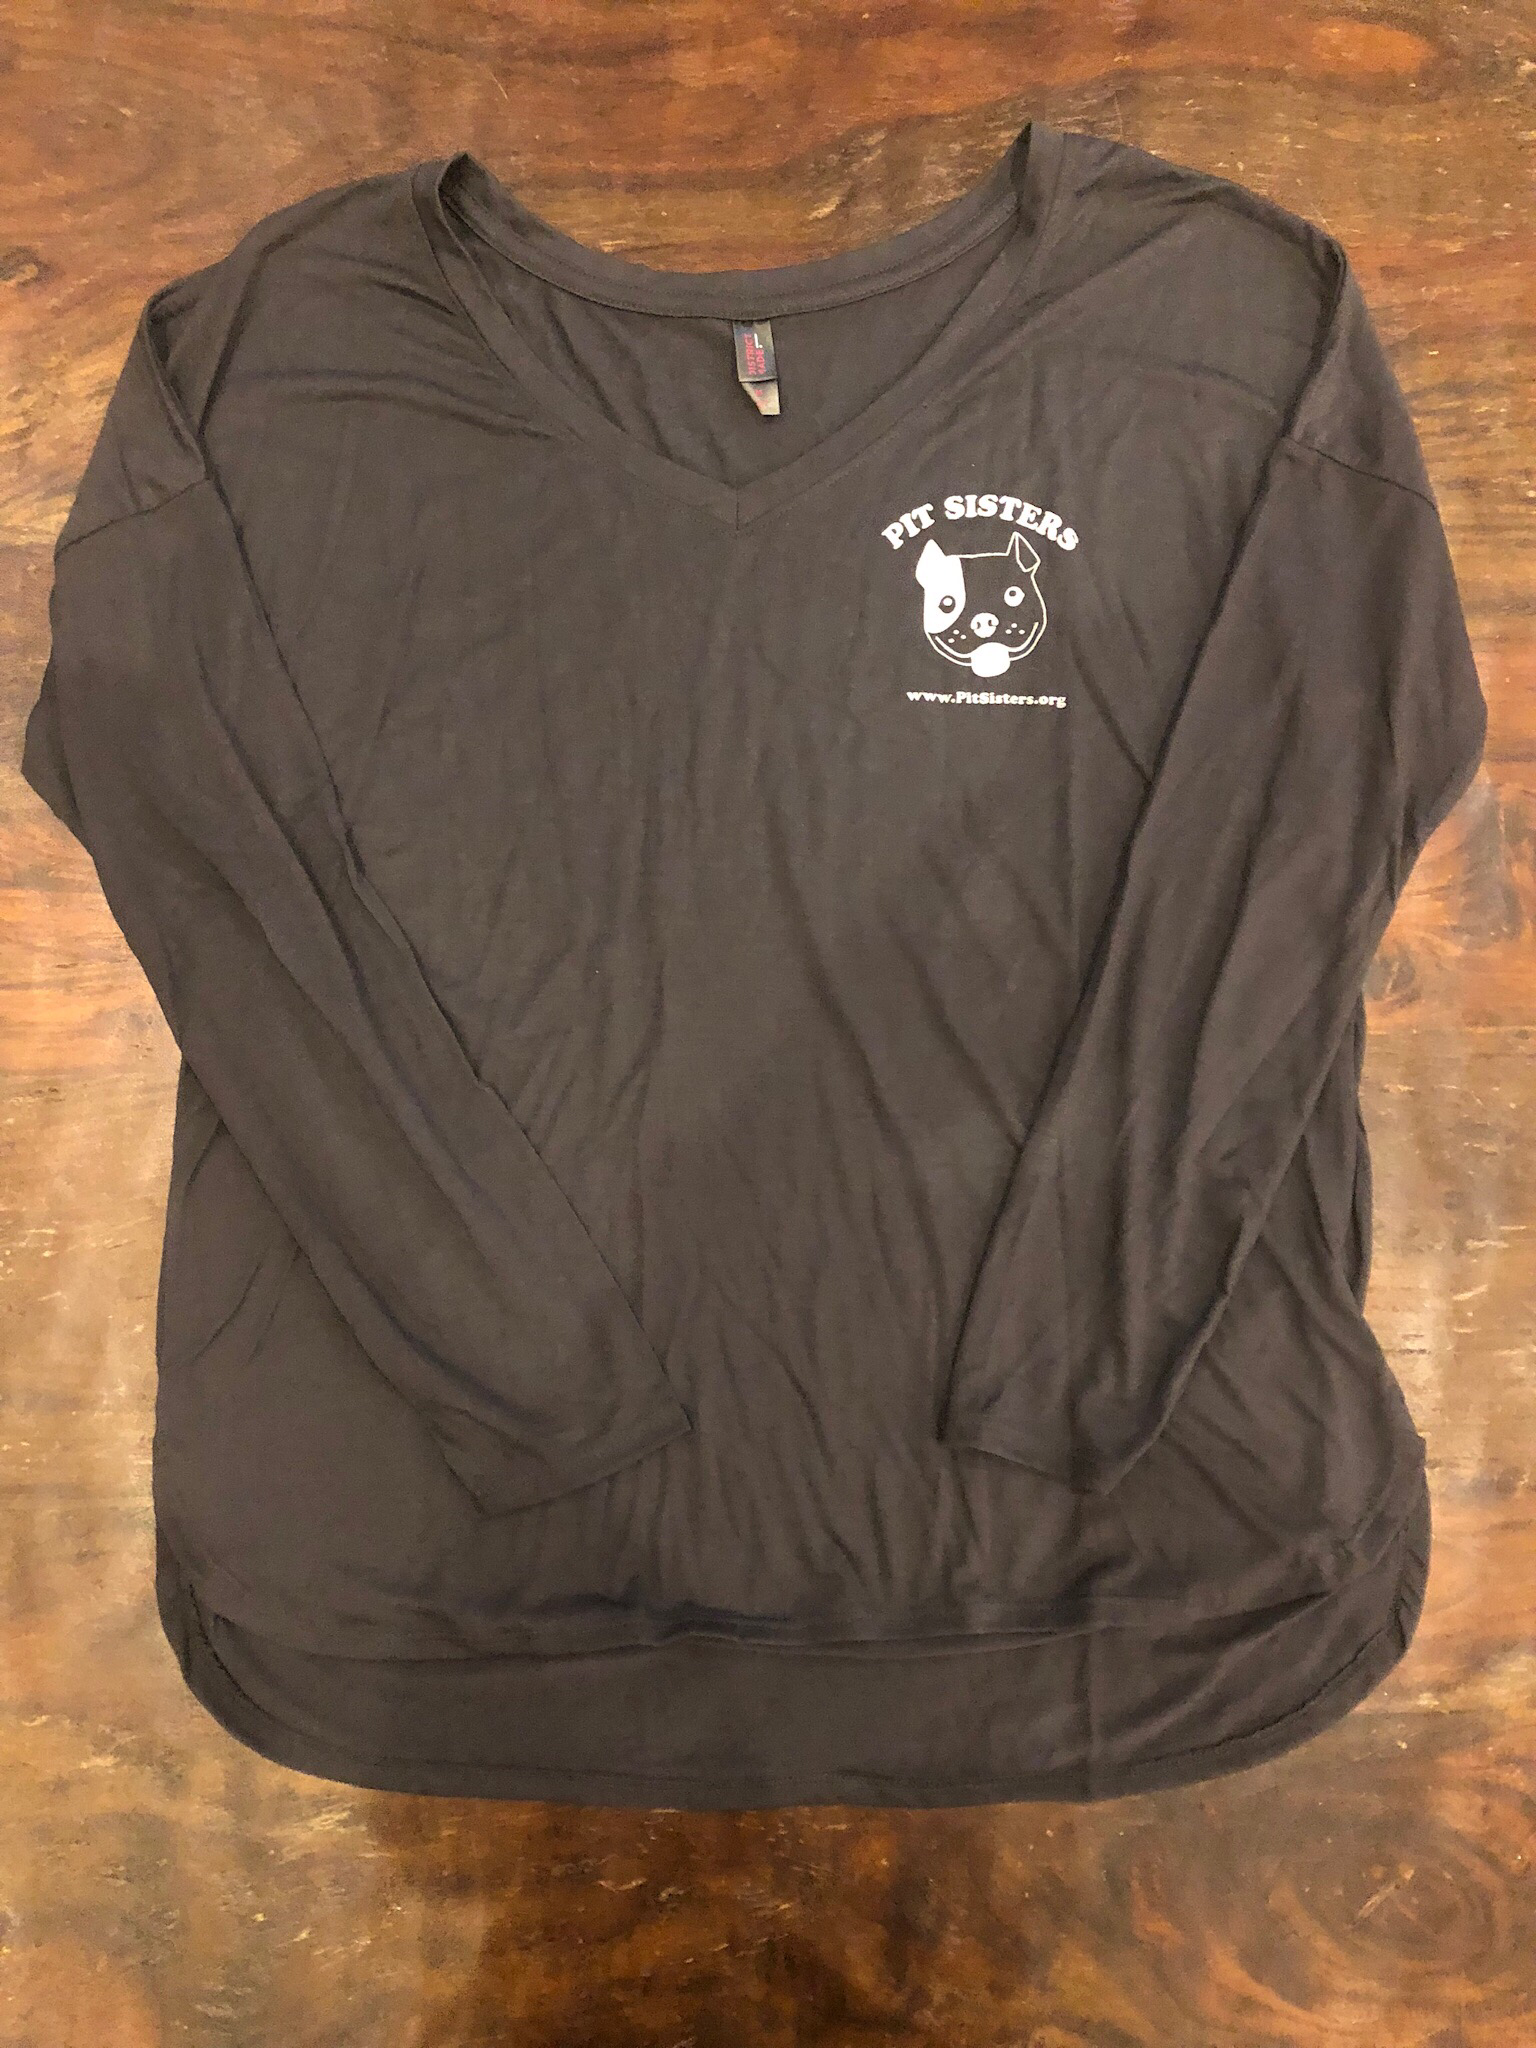 Gray long sleeved VNeck with Pit Sisters logo- 3XL 55697